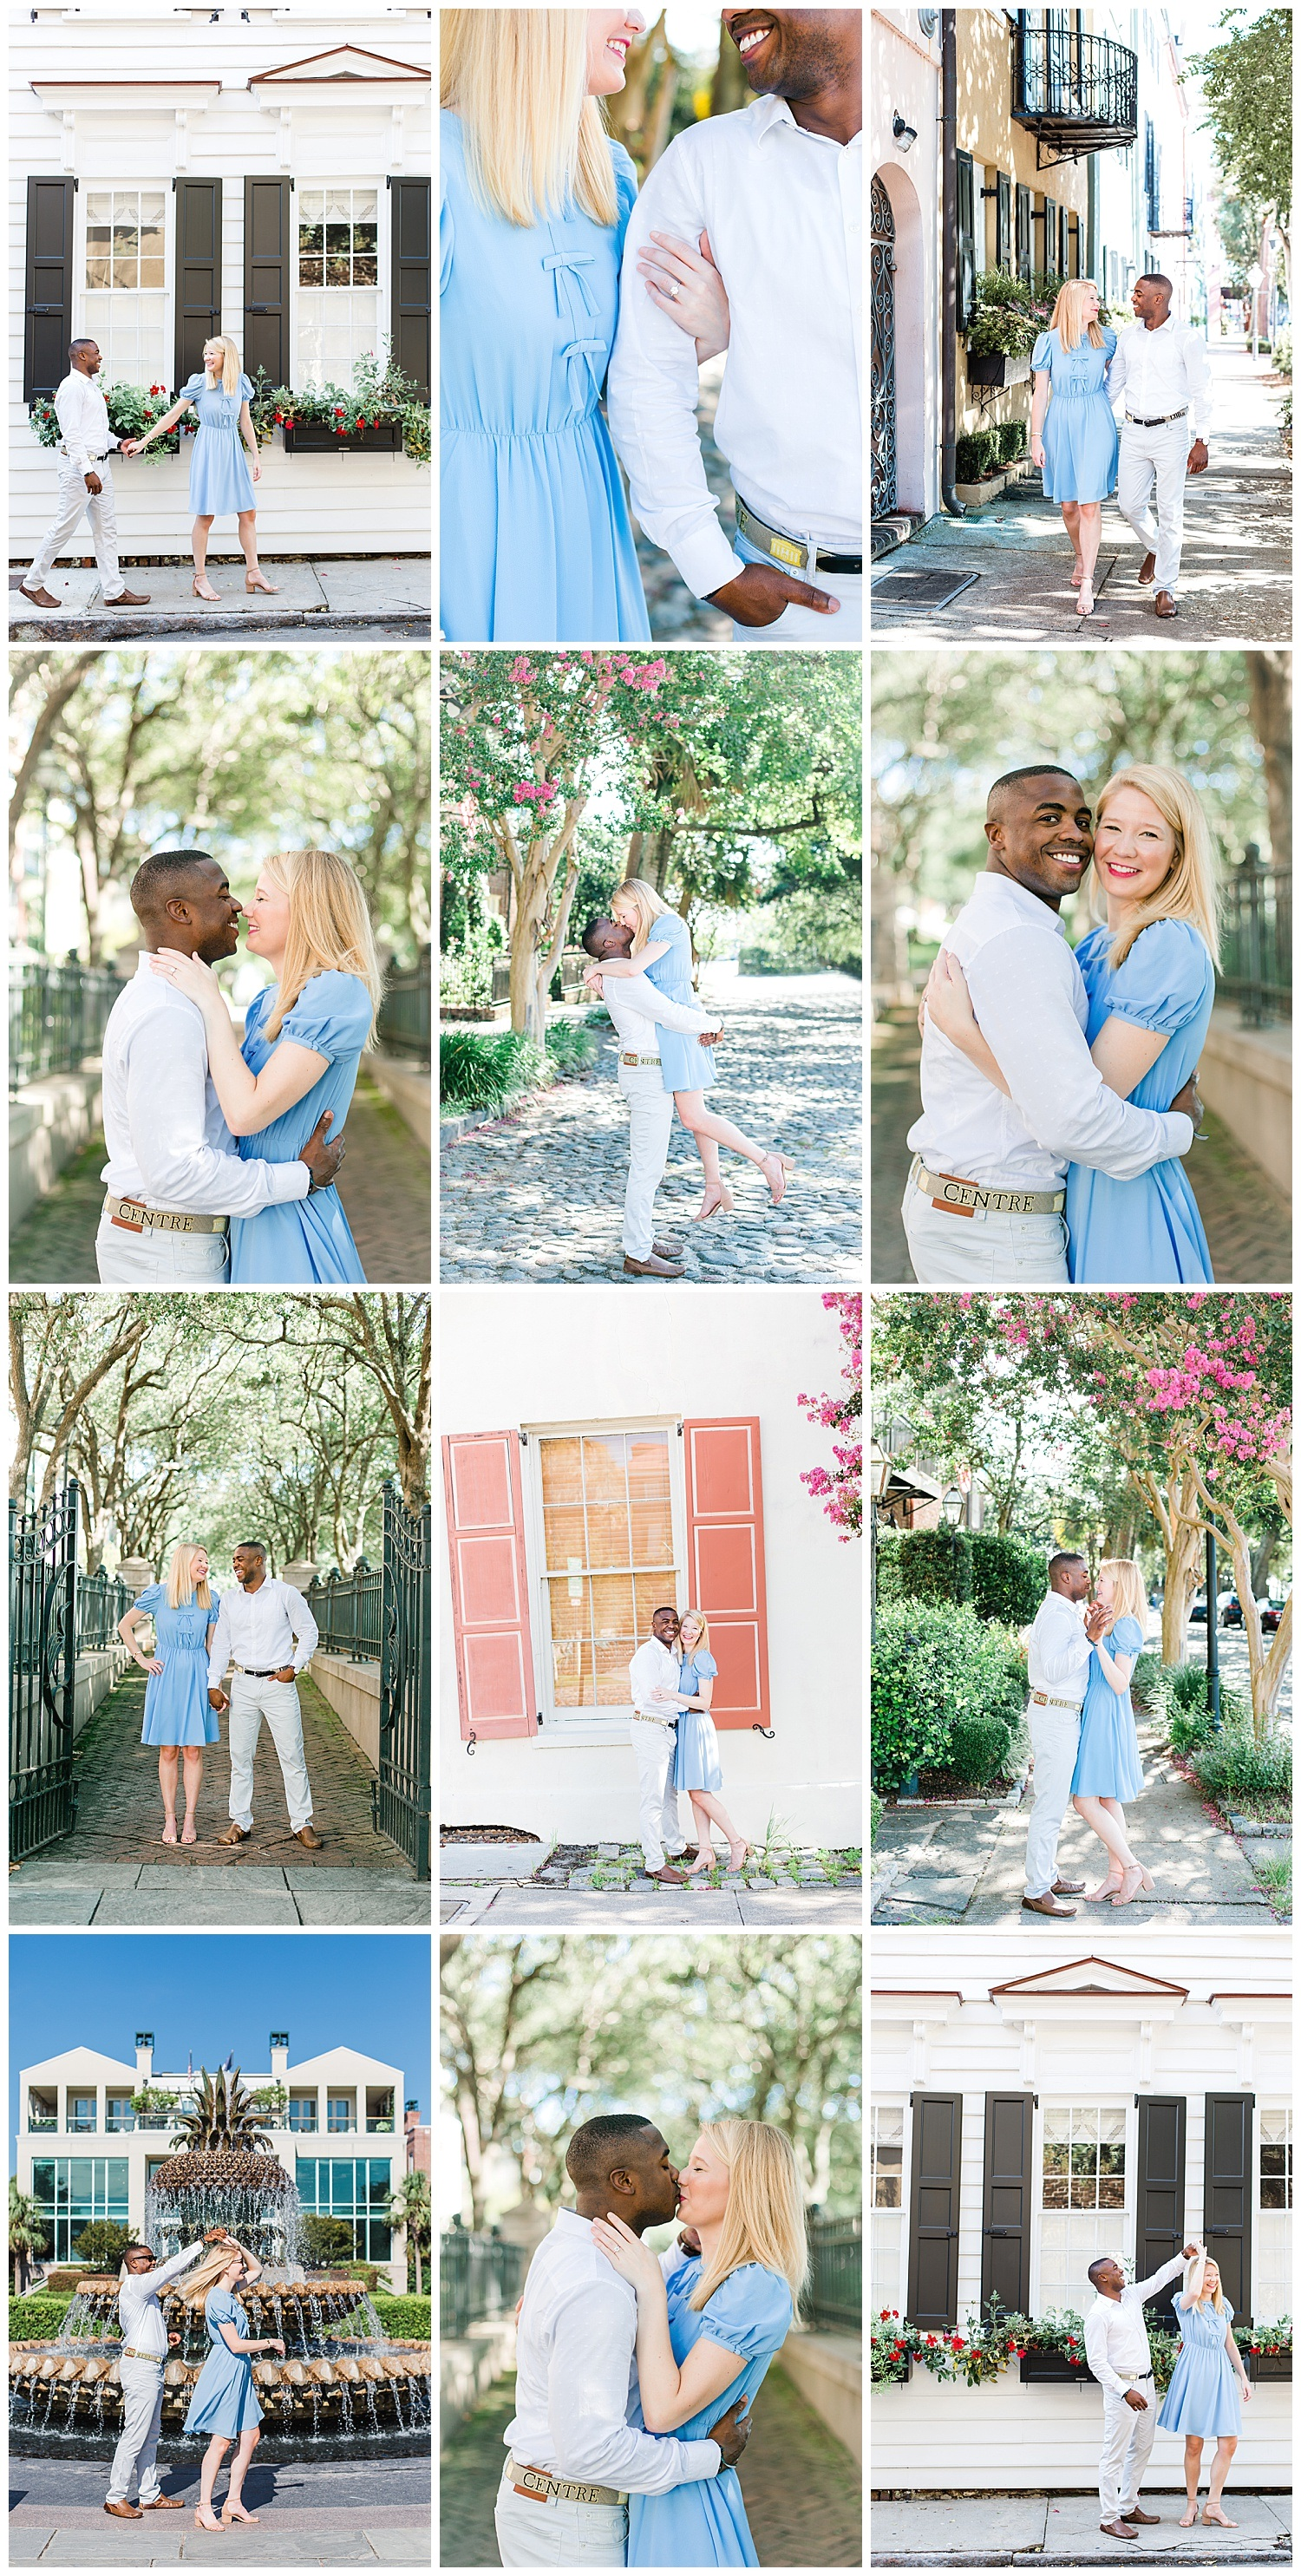 downtown-charleston-engagement-colorful-rainbow-row-pineapple-fountain-cobblestone-Kailee-DiMeglio-Photography.jpg